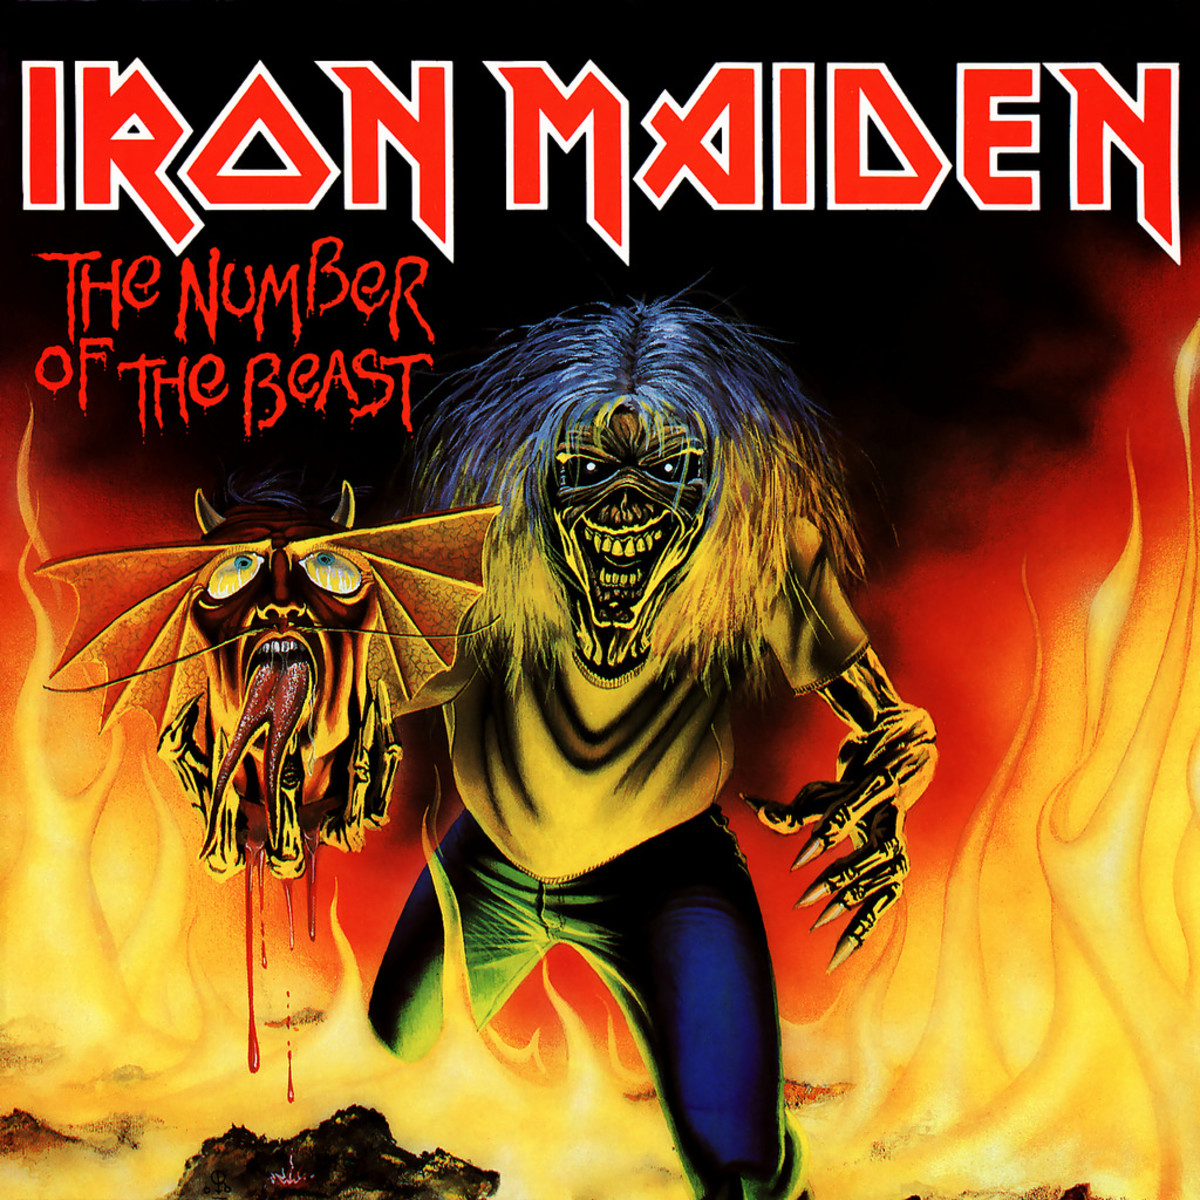 "Iron Maiden ""Number of the Beast"" EMI 5287 7"" Red Vinyl Single UK Pressing (1982) Cover Art by Derek Riggs"